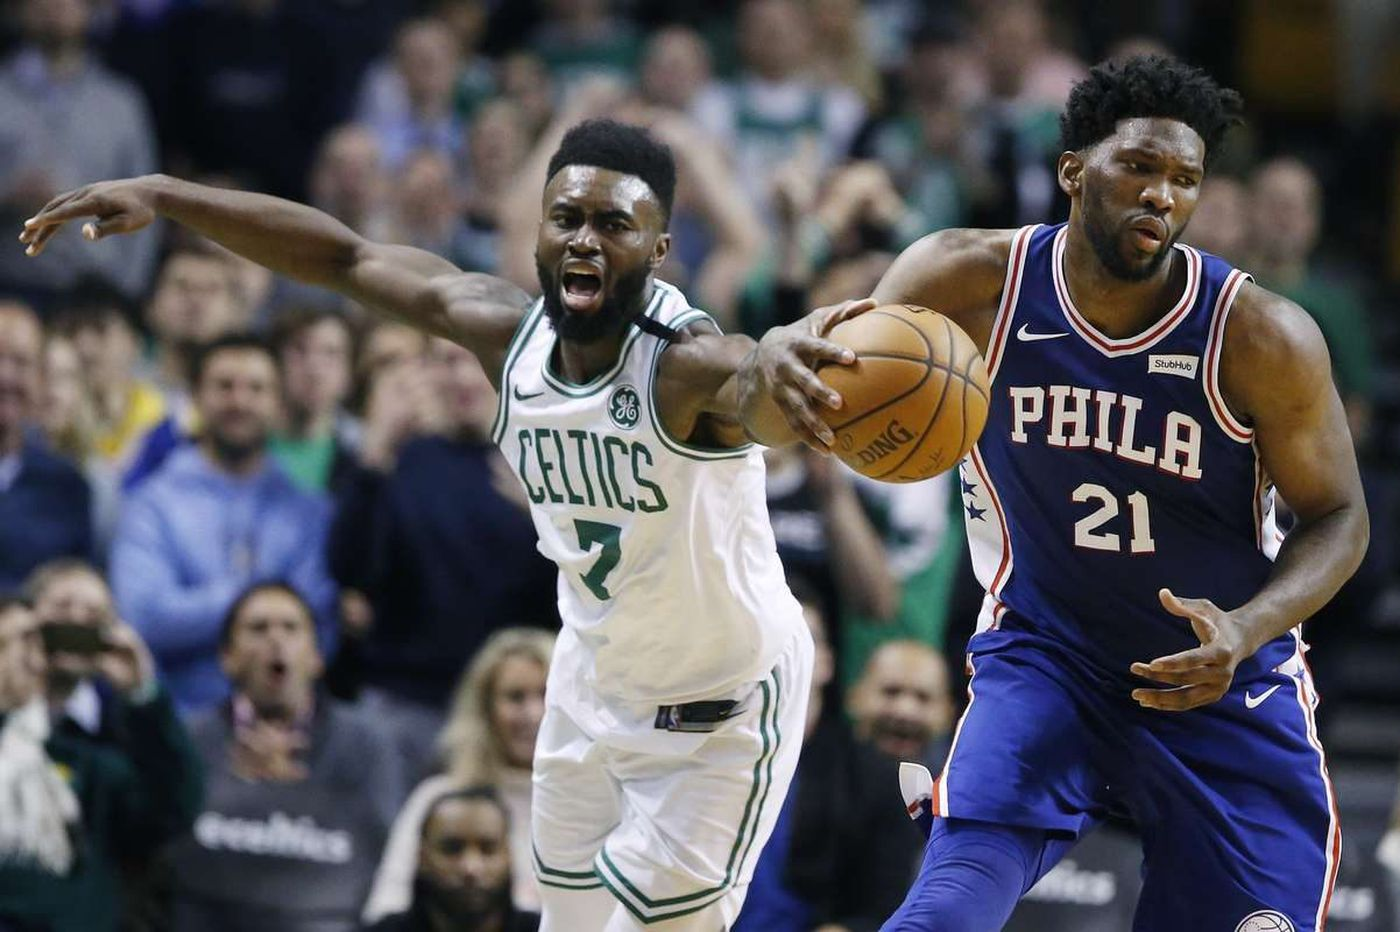 Sixers 89, Celtics 80: Newly minted all-star Joel Embiid leads Philly to an 89-80 victory over Boston